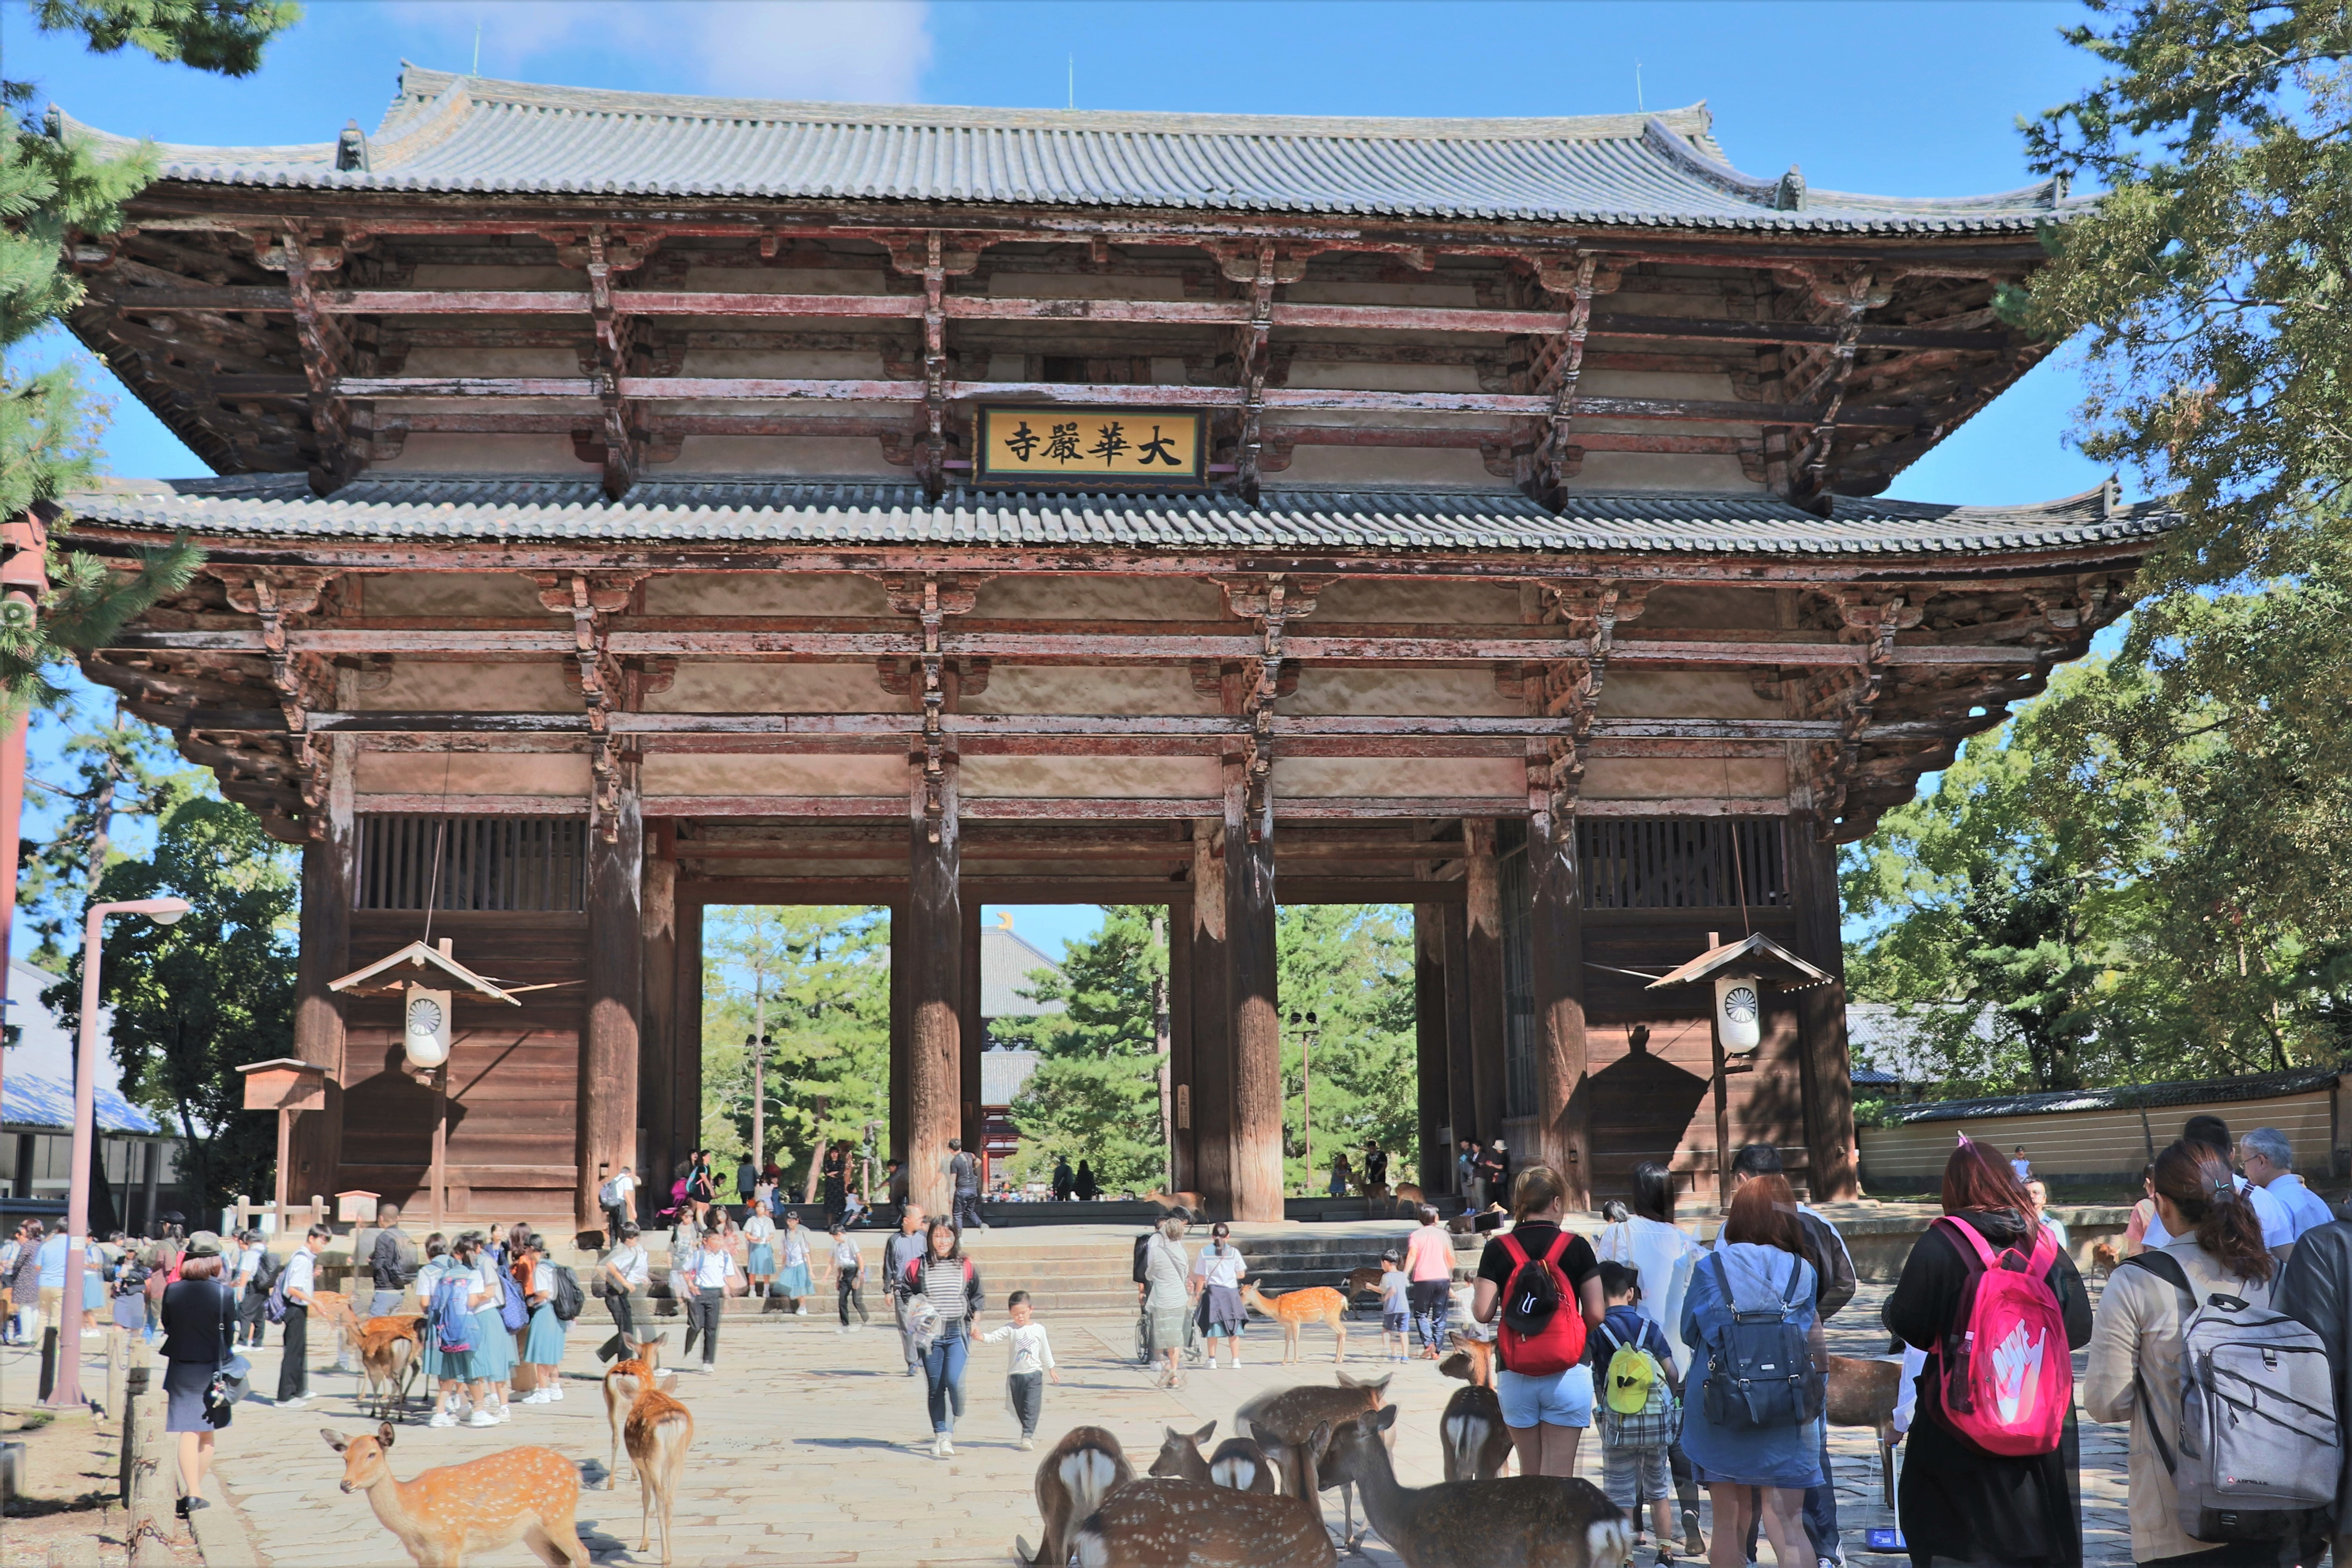 Nadaimon gate of todaiji temple in Nara